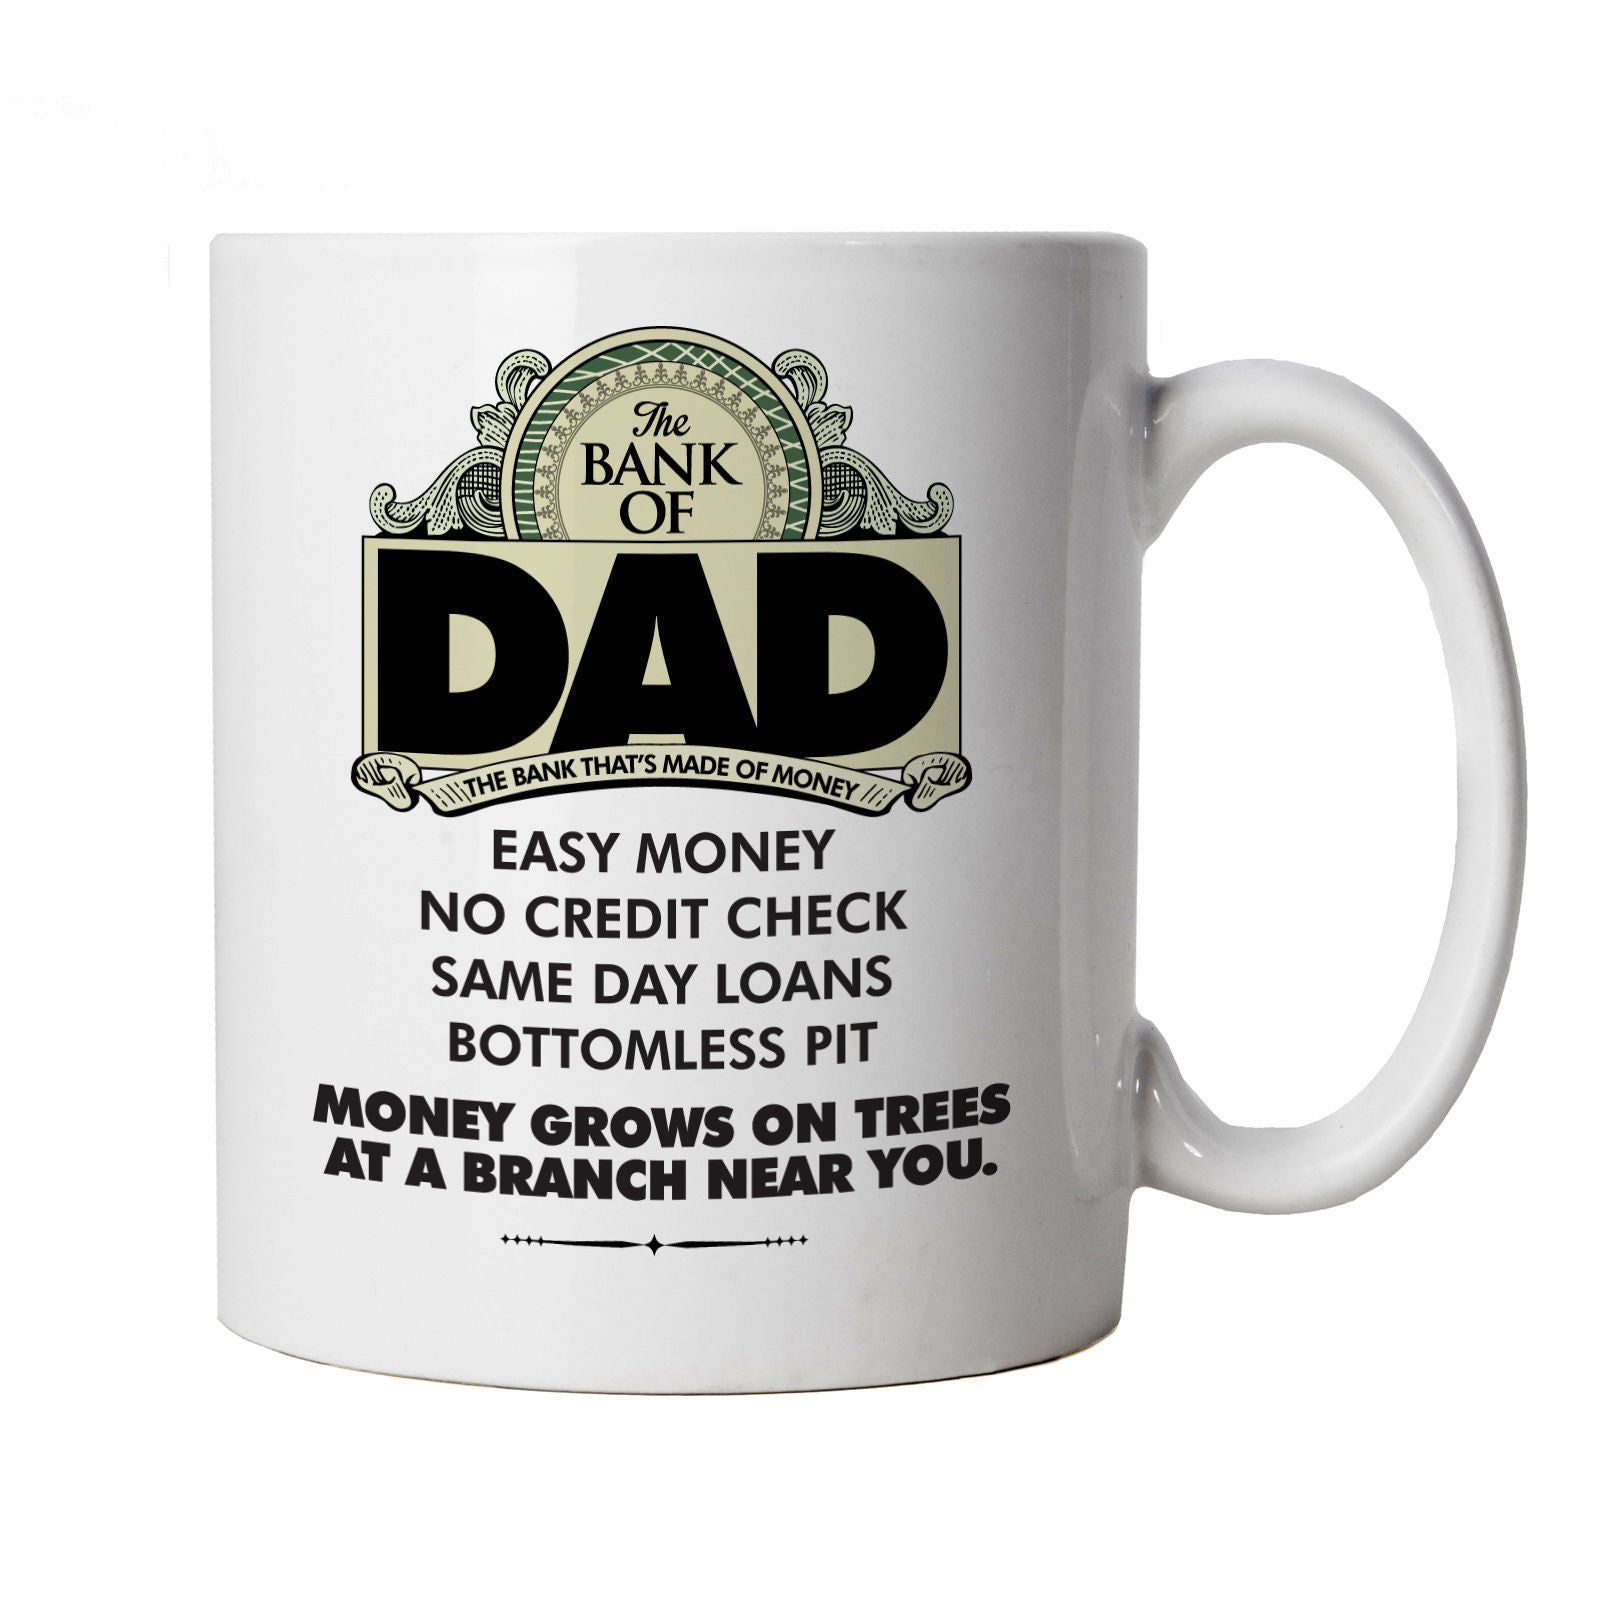 Bank of Dad, Mug